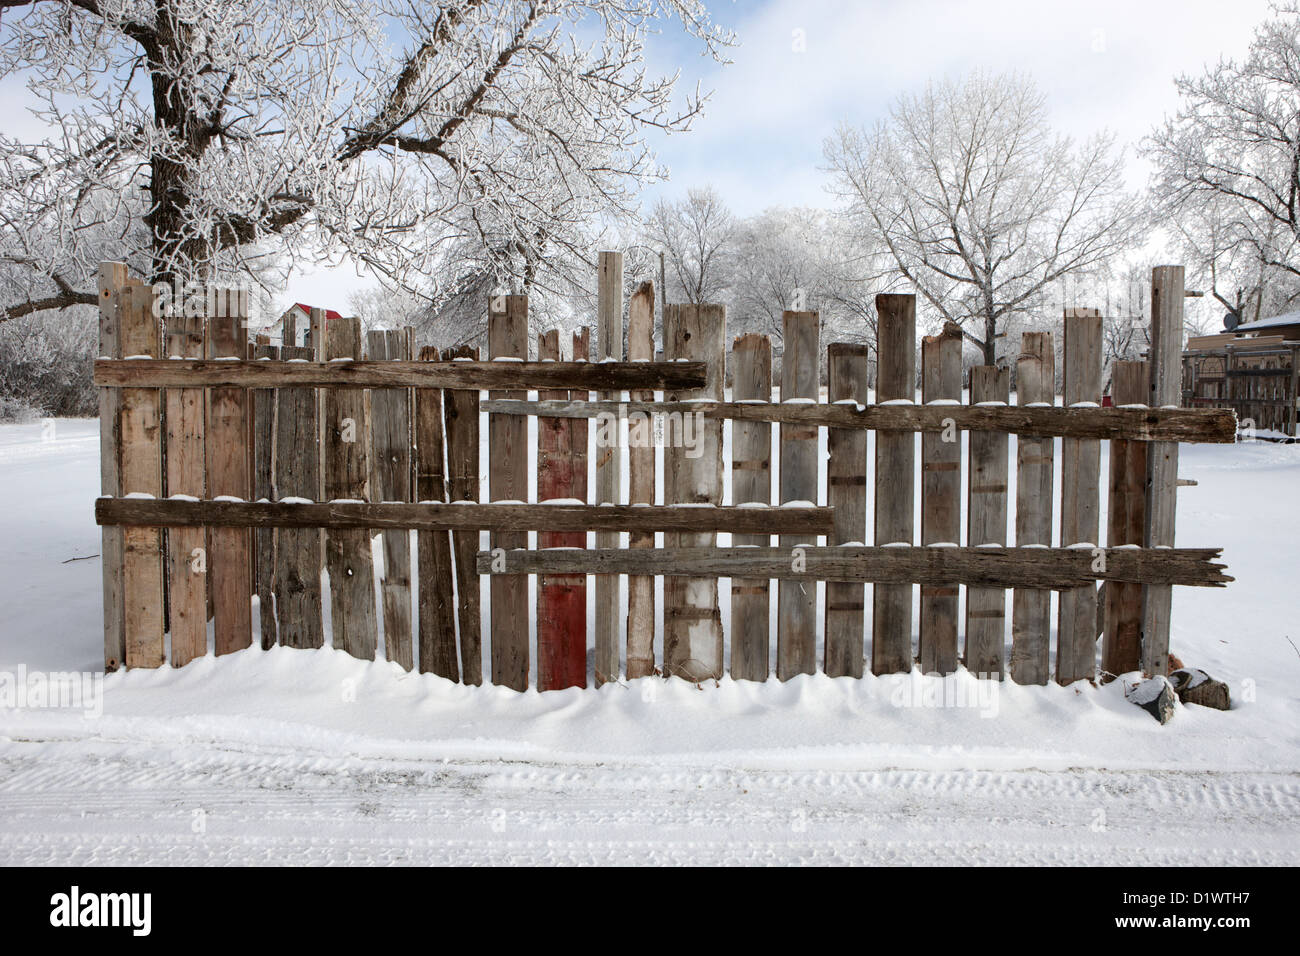 old patched up wooden fence using old bits of wood in snow Forget Saskatchewan Canada - Stock Image